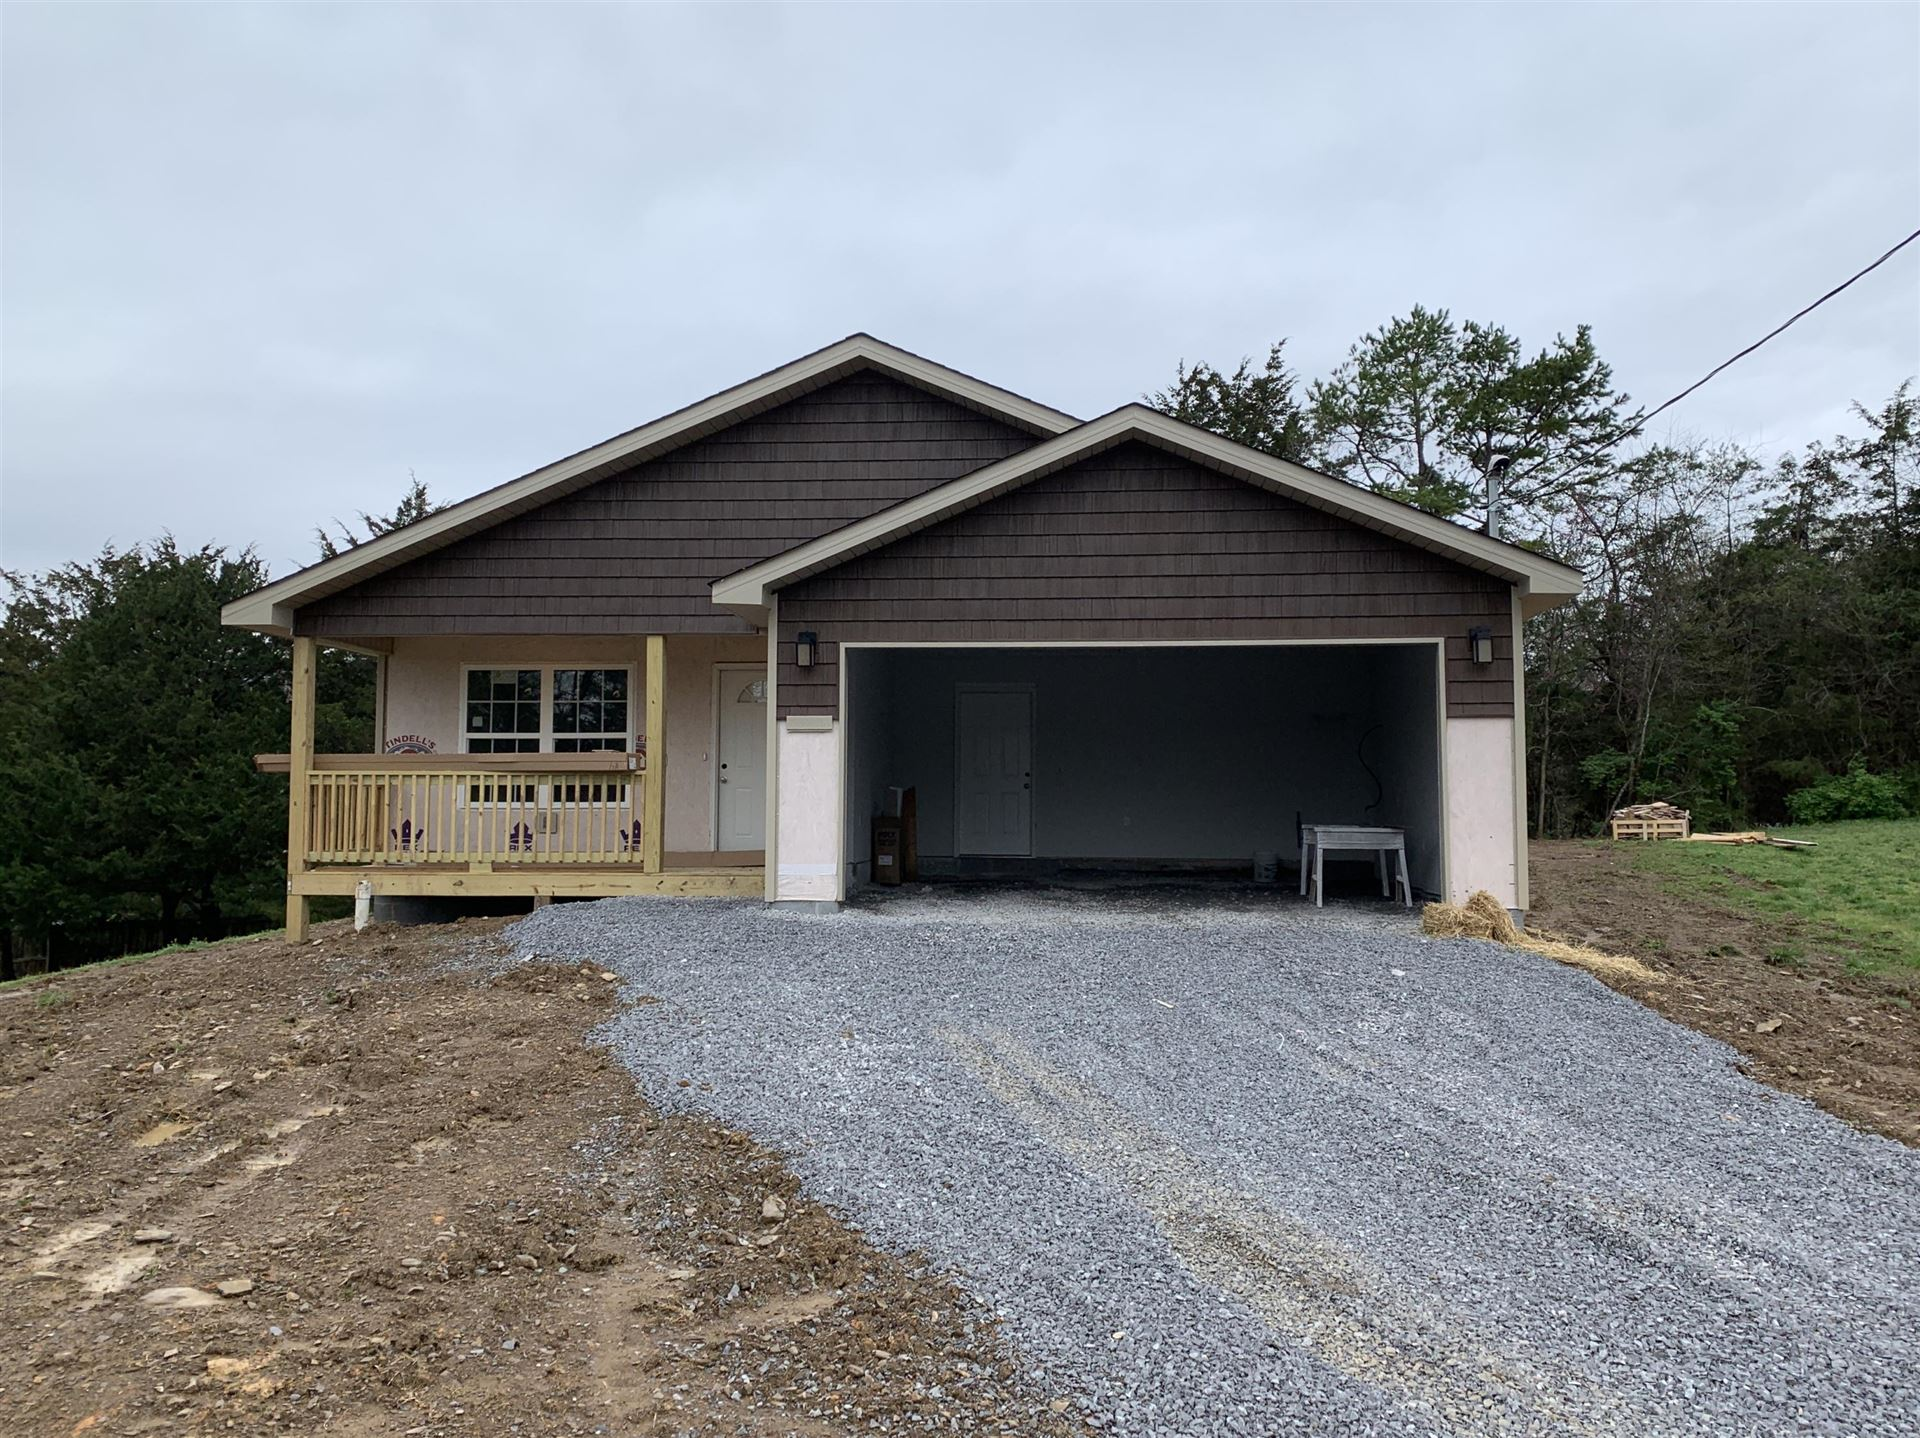 Photo of 1128 Tanager St, Sevierville, TN 37862 (MLS # 1112452)